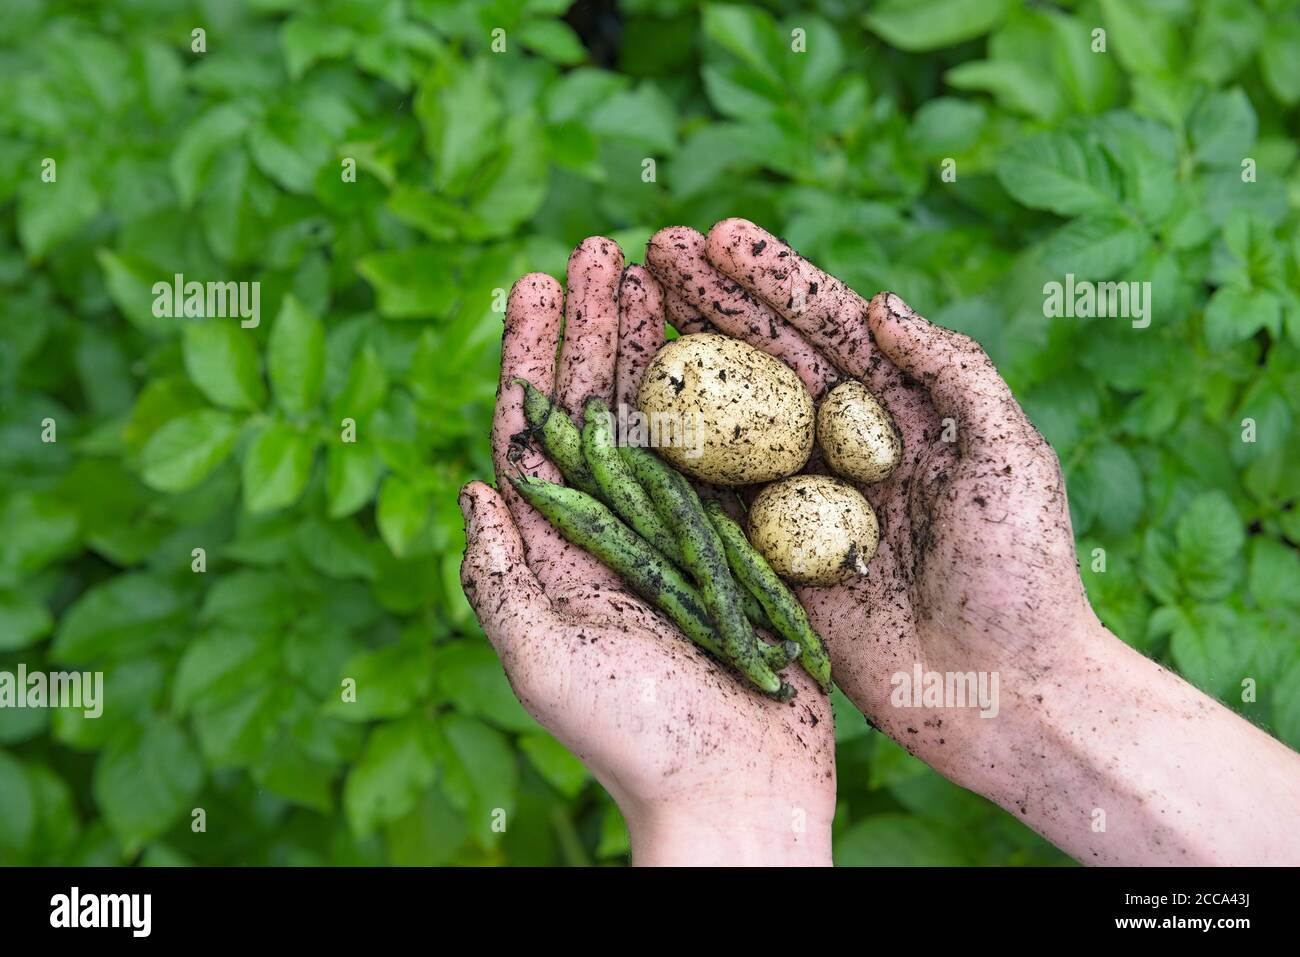 Vibrant green leafy background behind young hands that hold muddy white potatoes and healthy giant exhibition long pod beans. Healthy natural food. Stock Photo